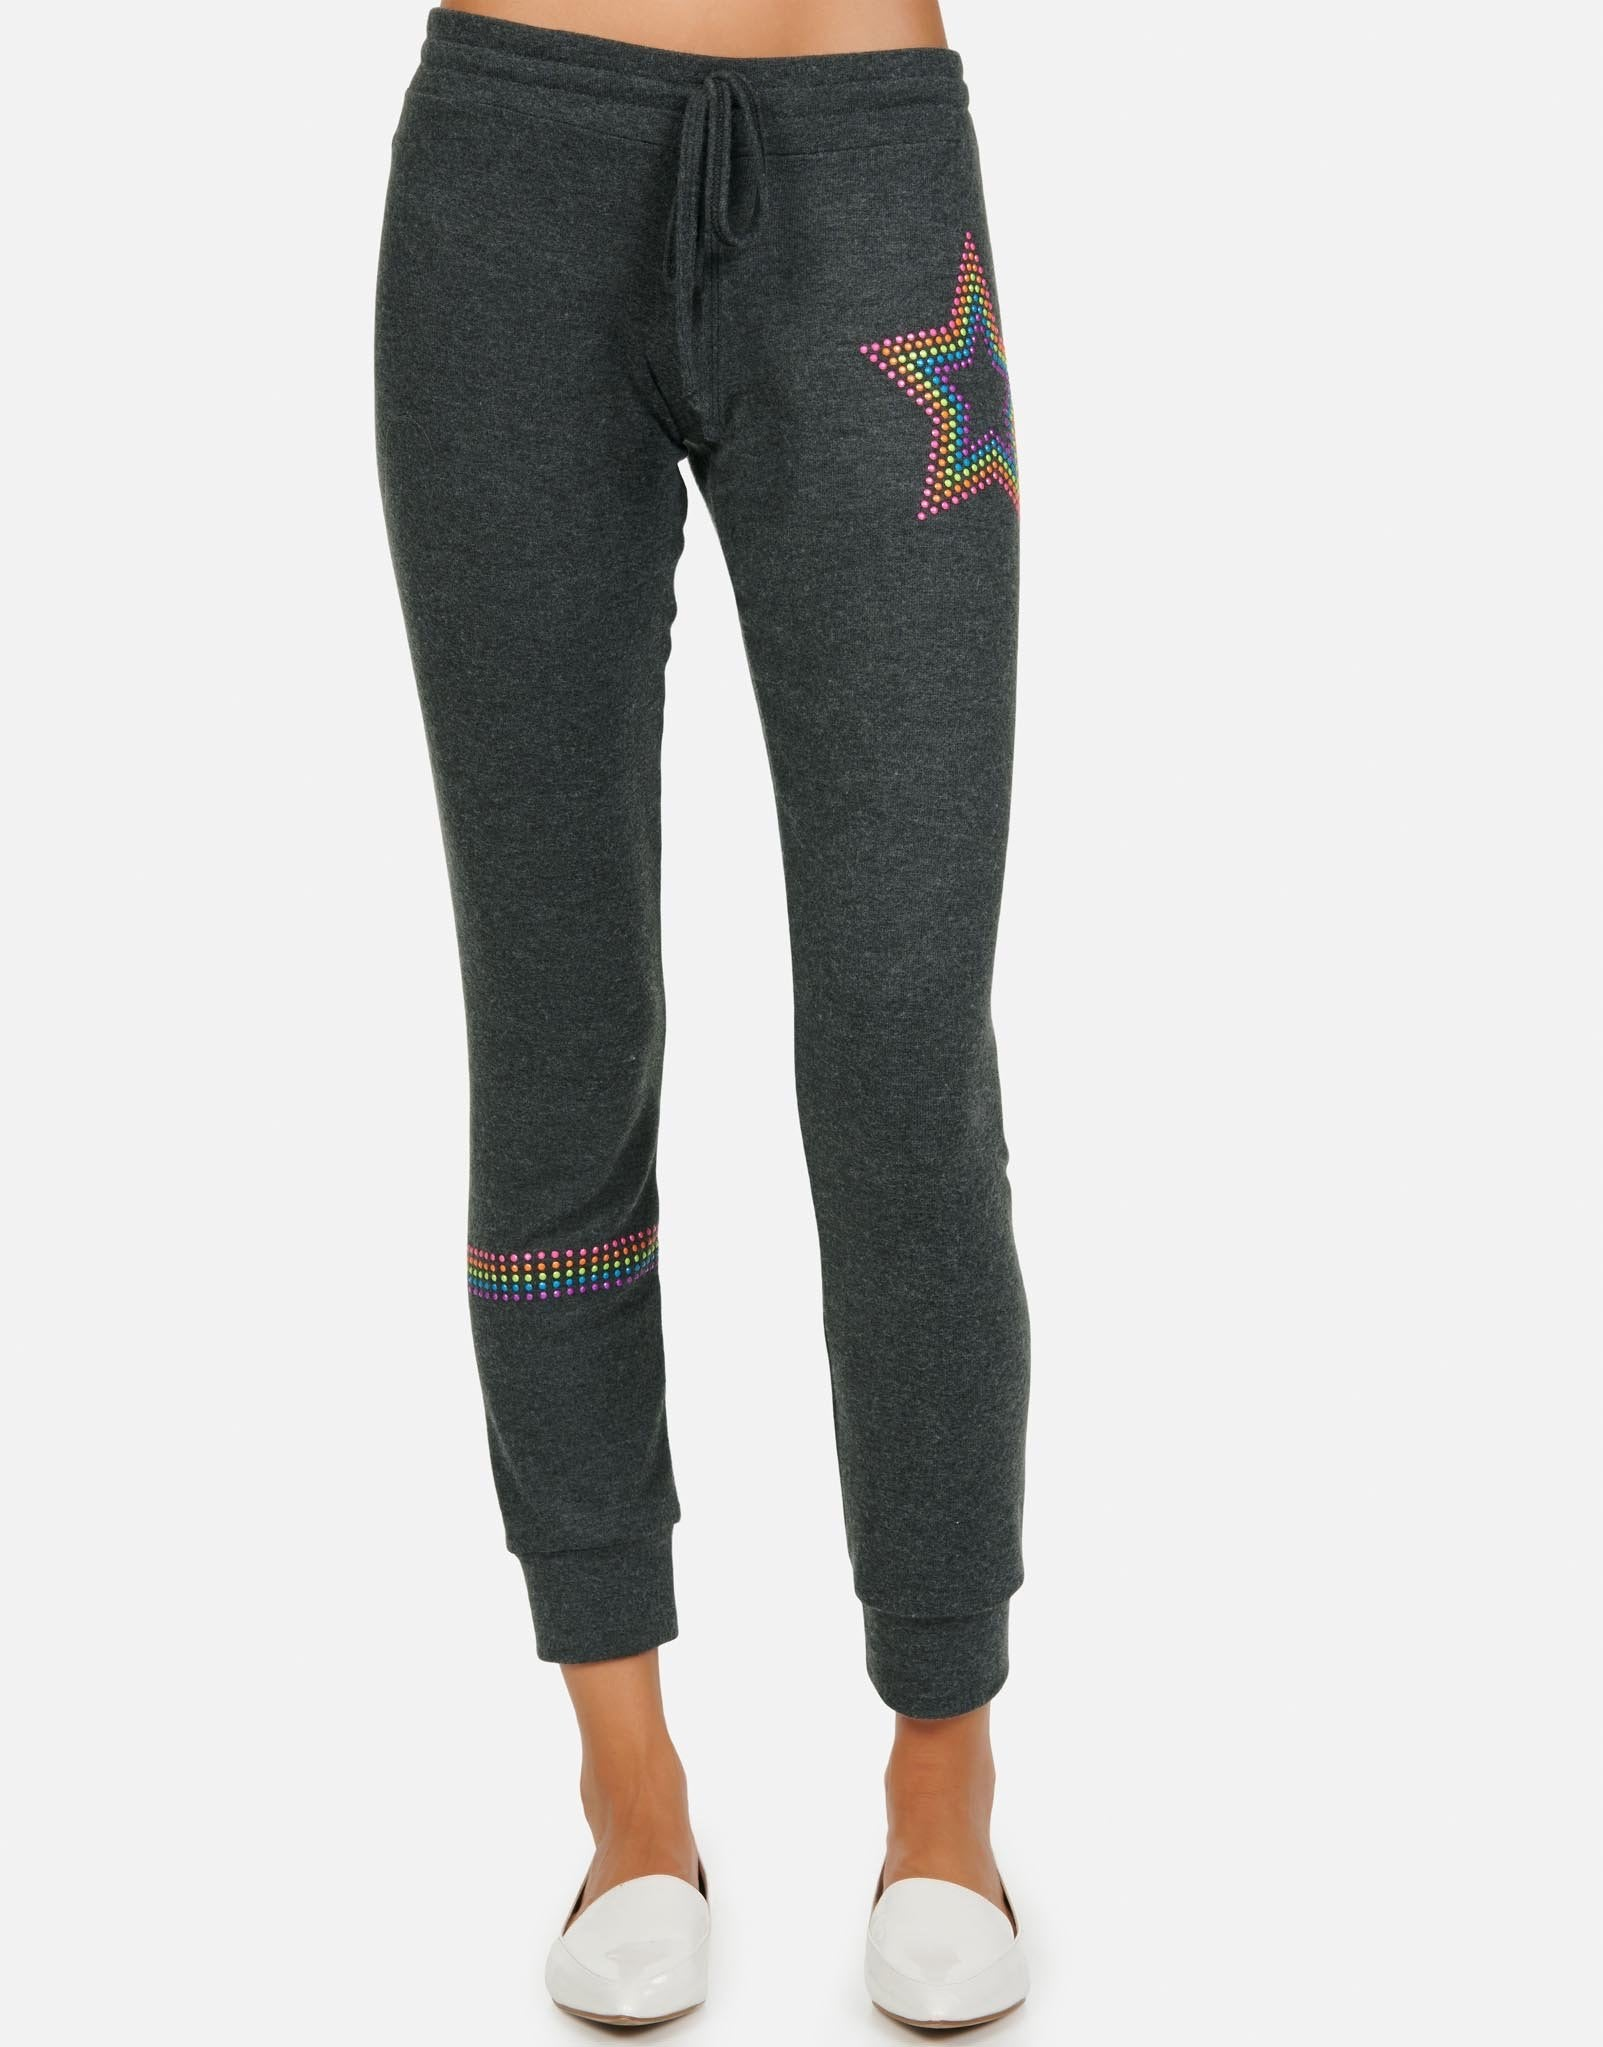 Star Leg Sweatpants